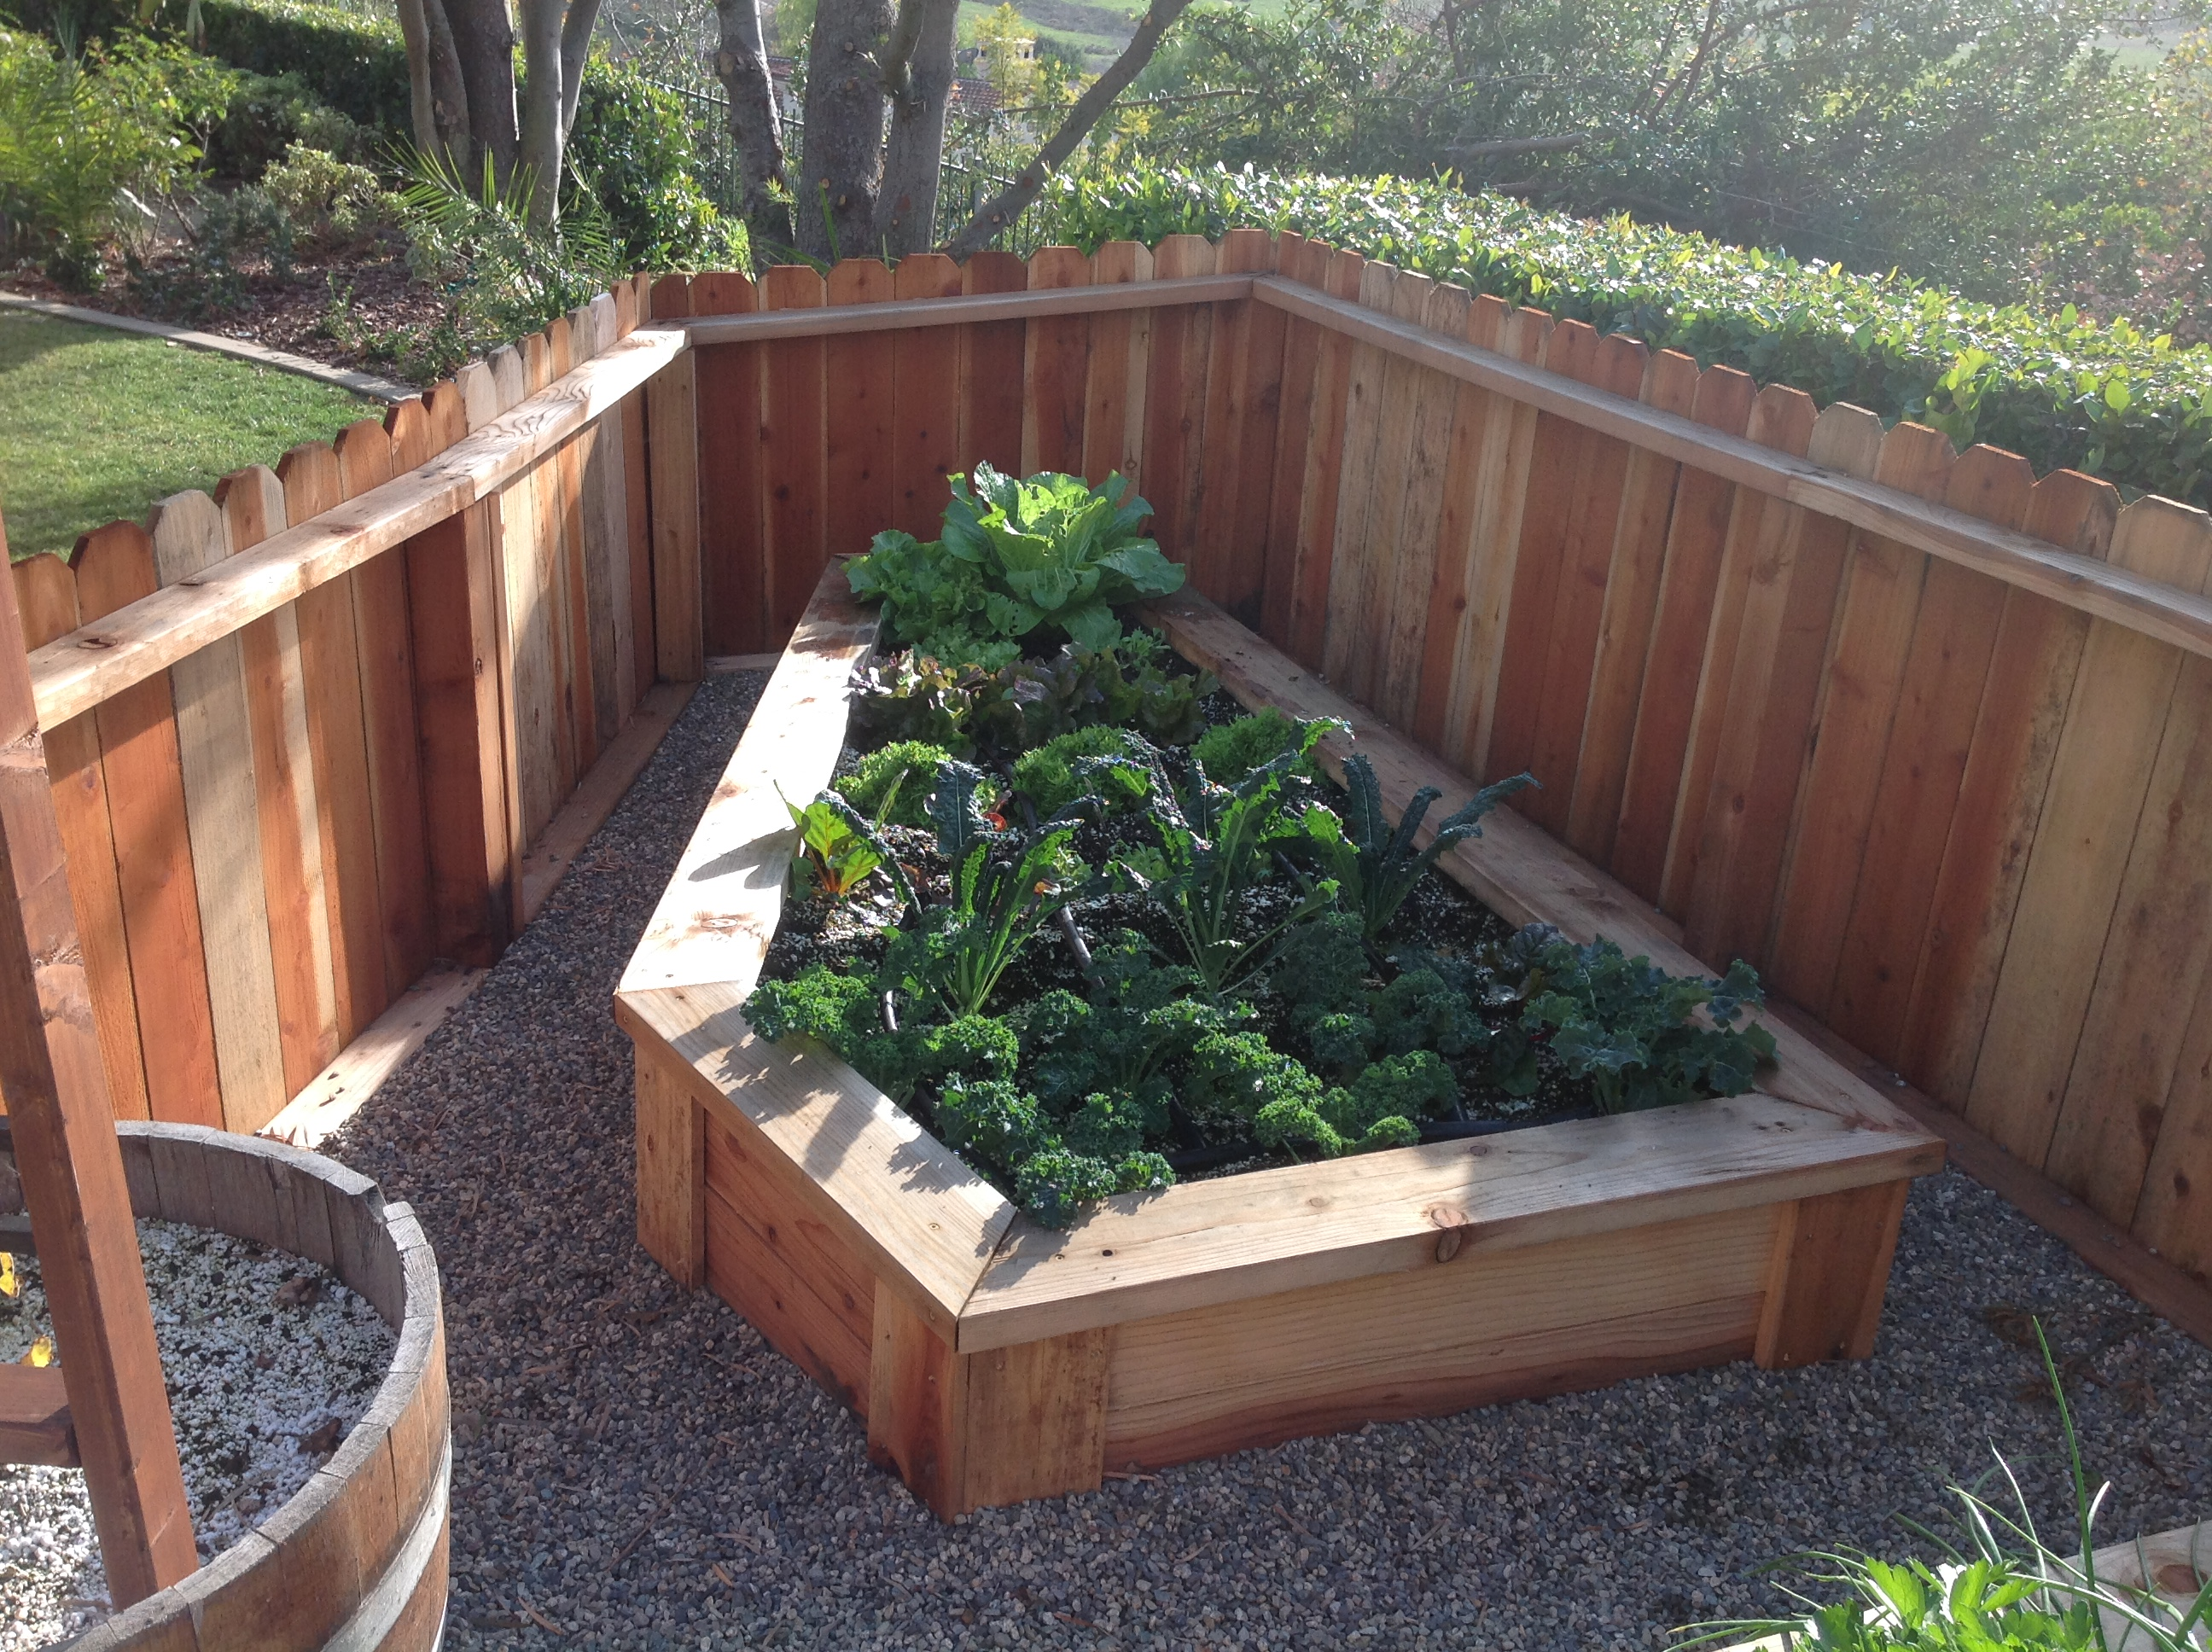 Harvest to home create the organic garden of your dreams